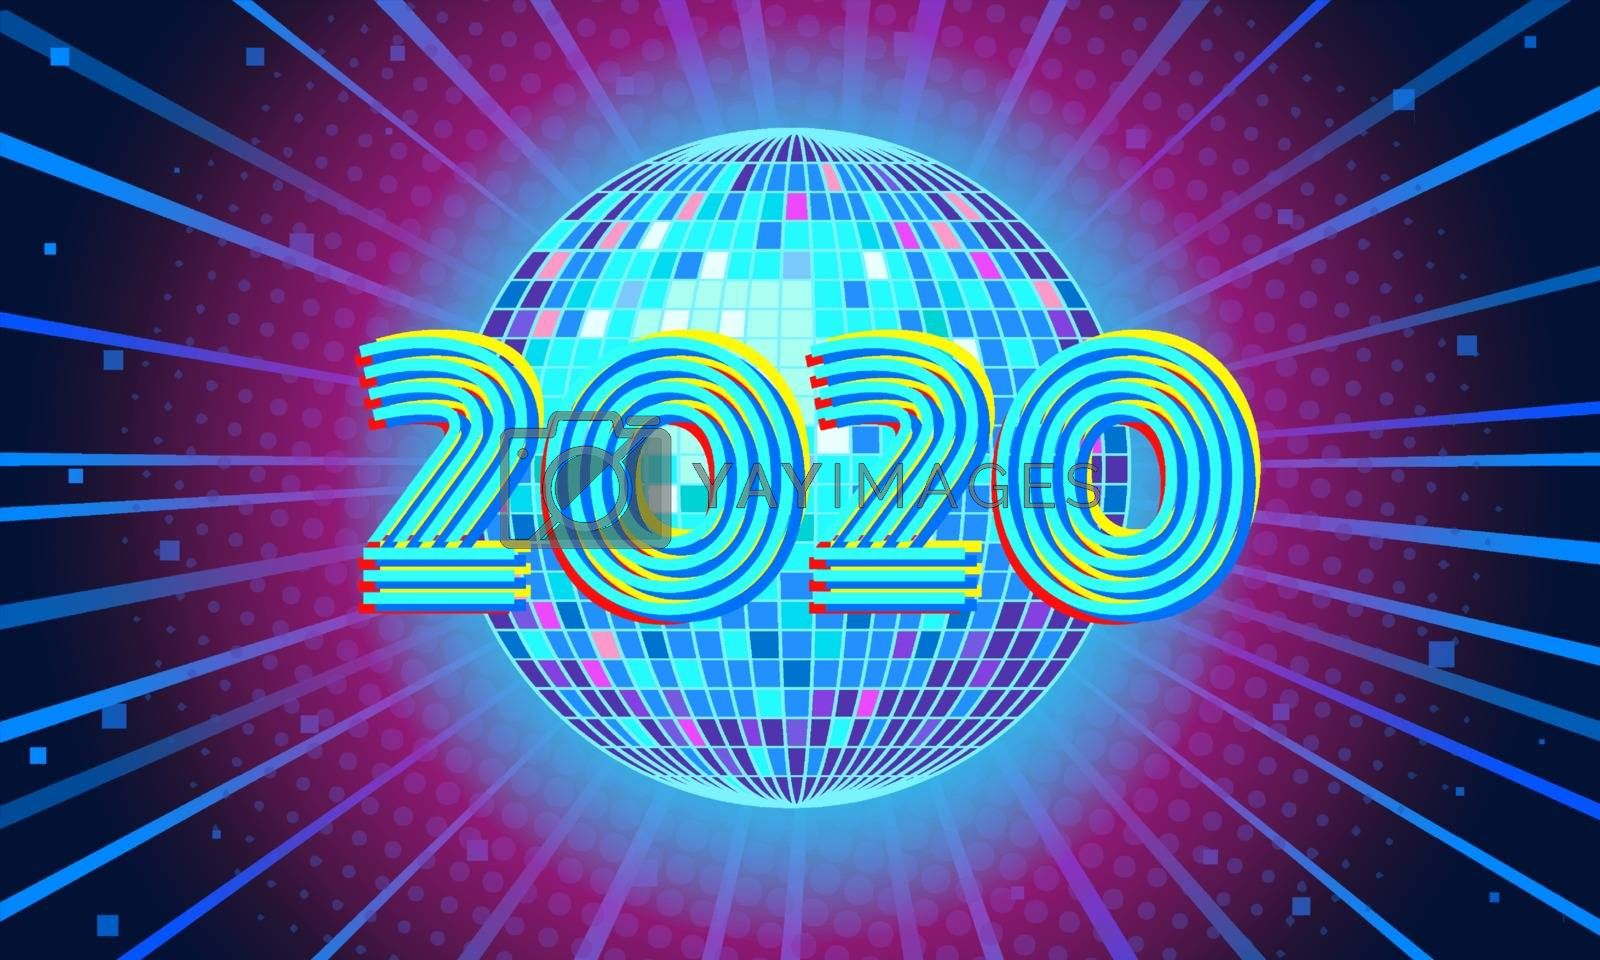 2020 New year Blue disco ball background. Comic cartoon pop art retro vector illustration drawing